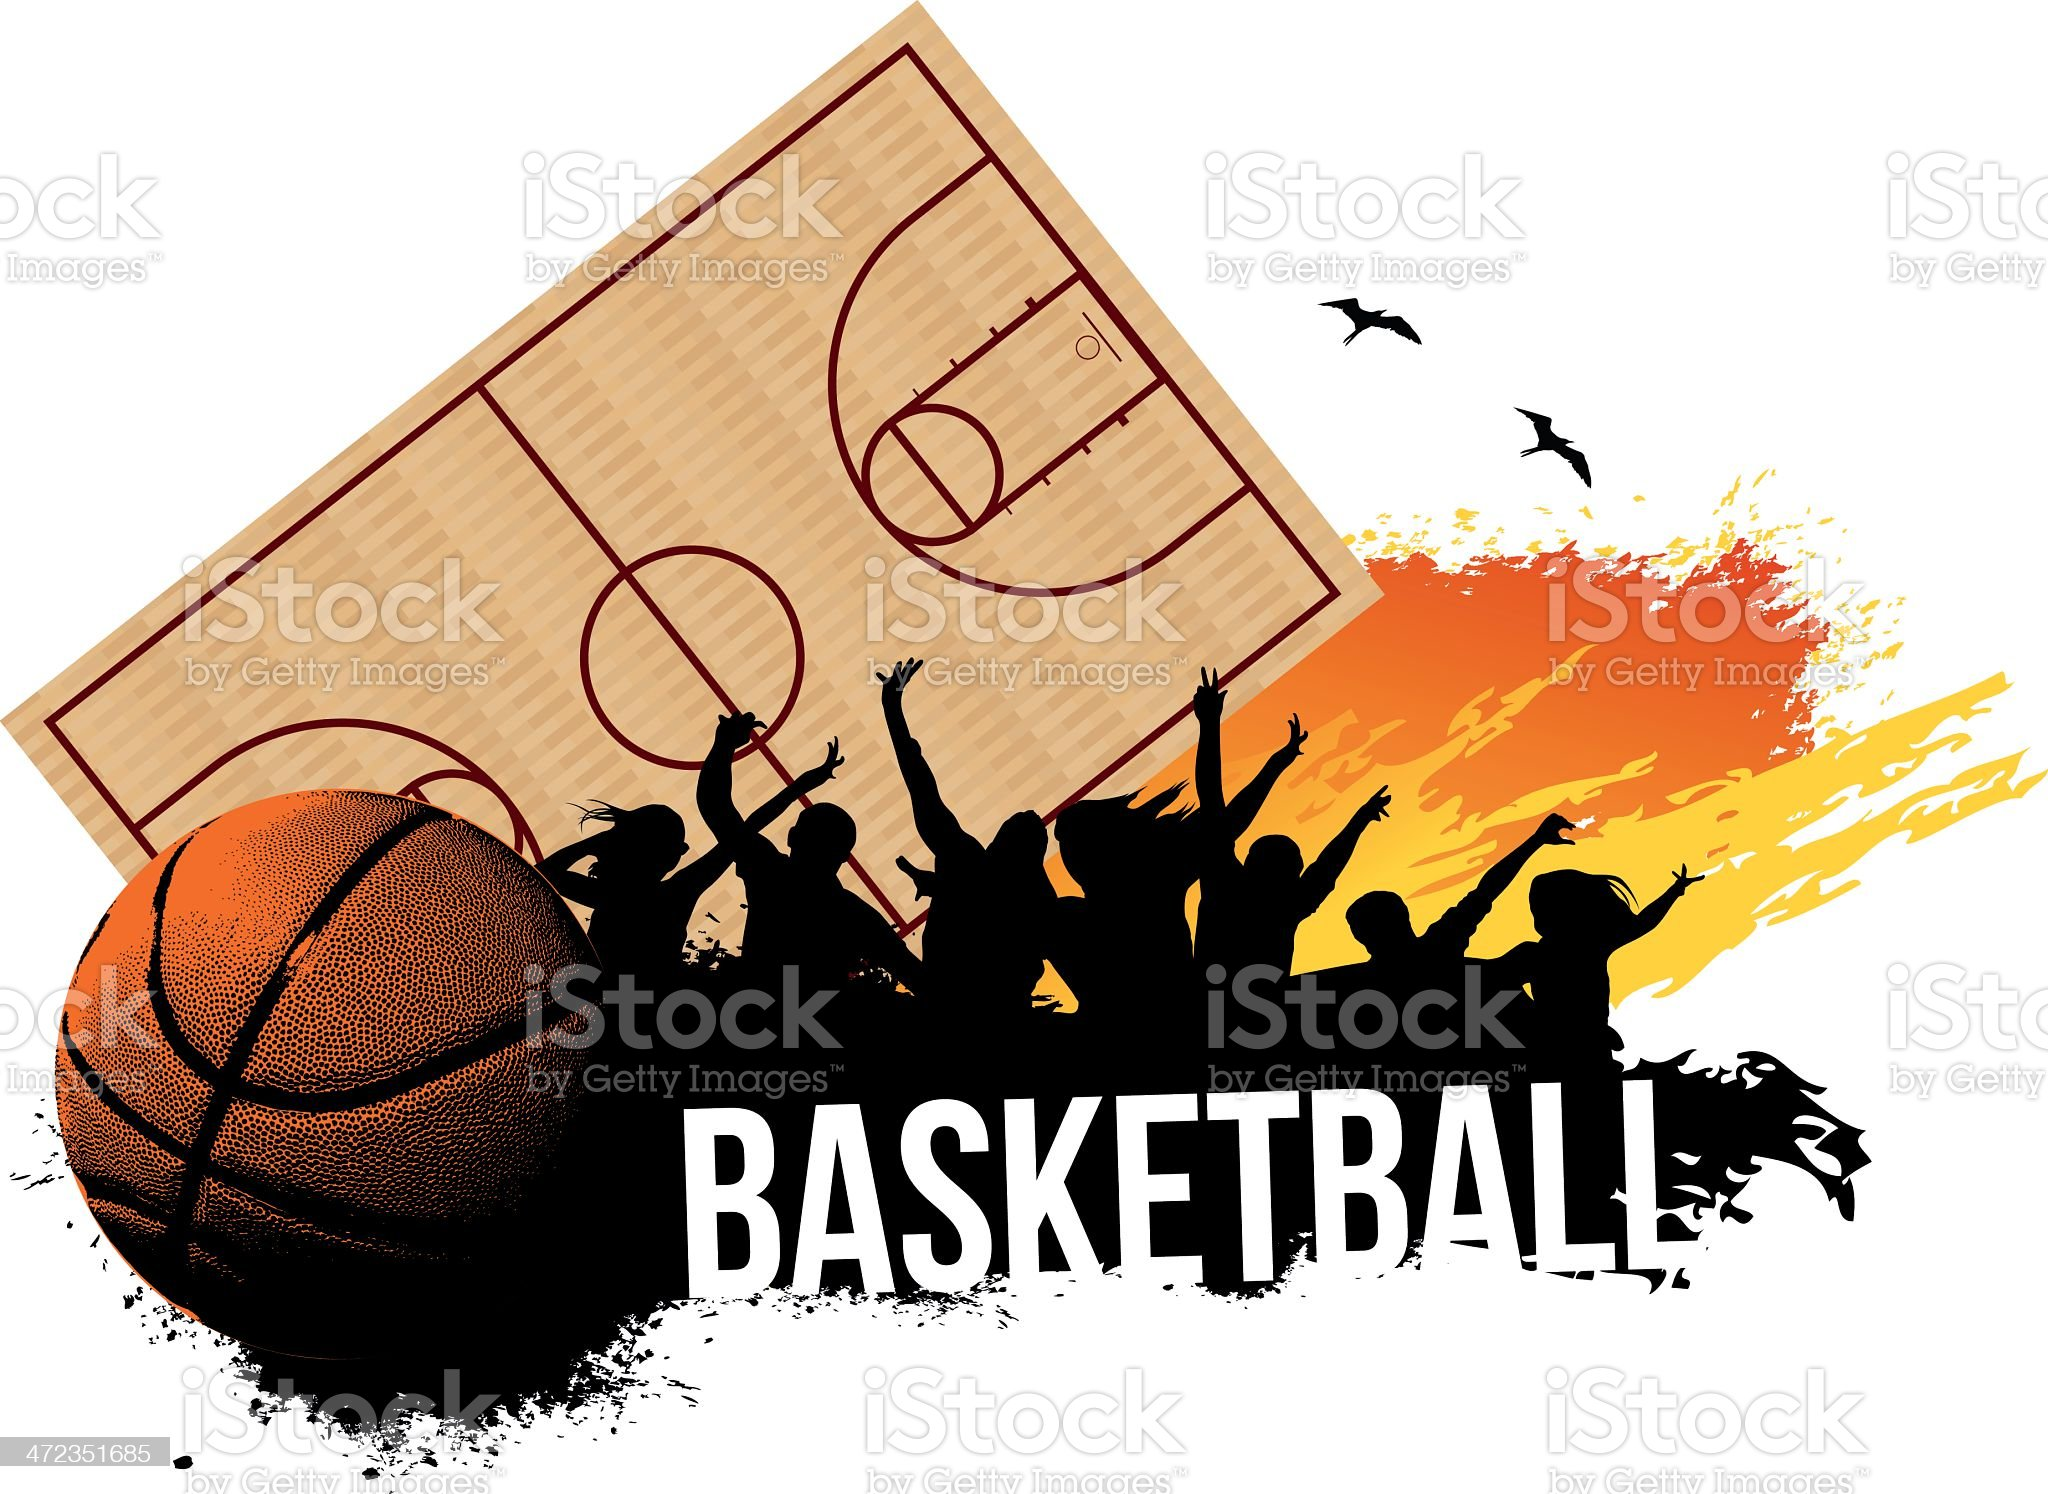 Cheering Crowd in Basketball game royalty-free stock vector art